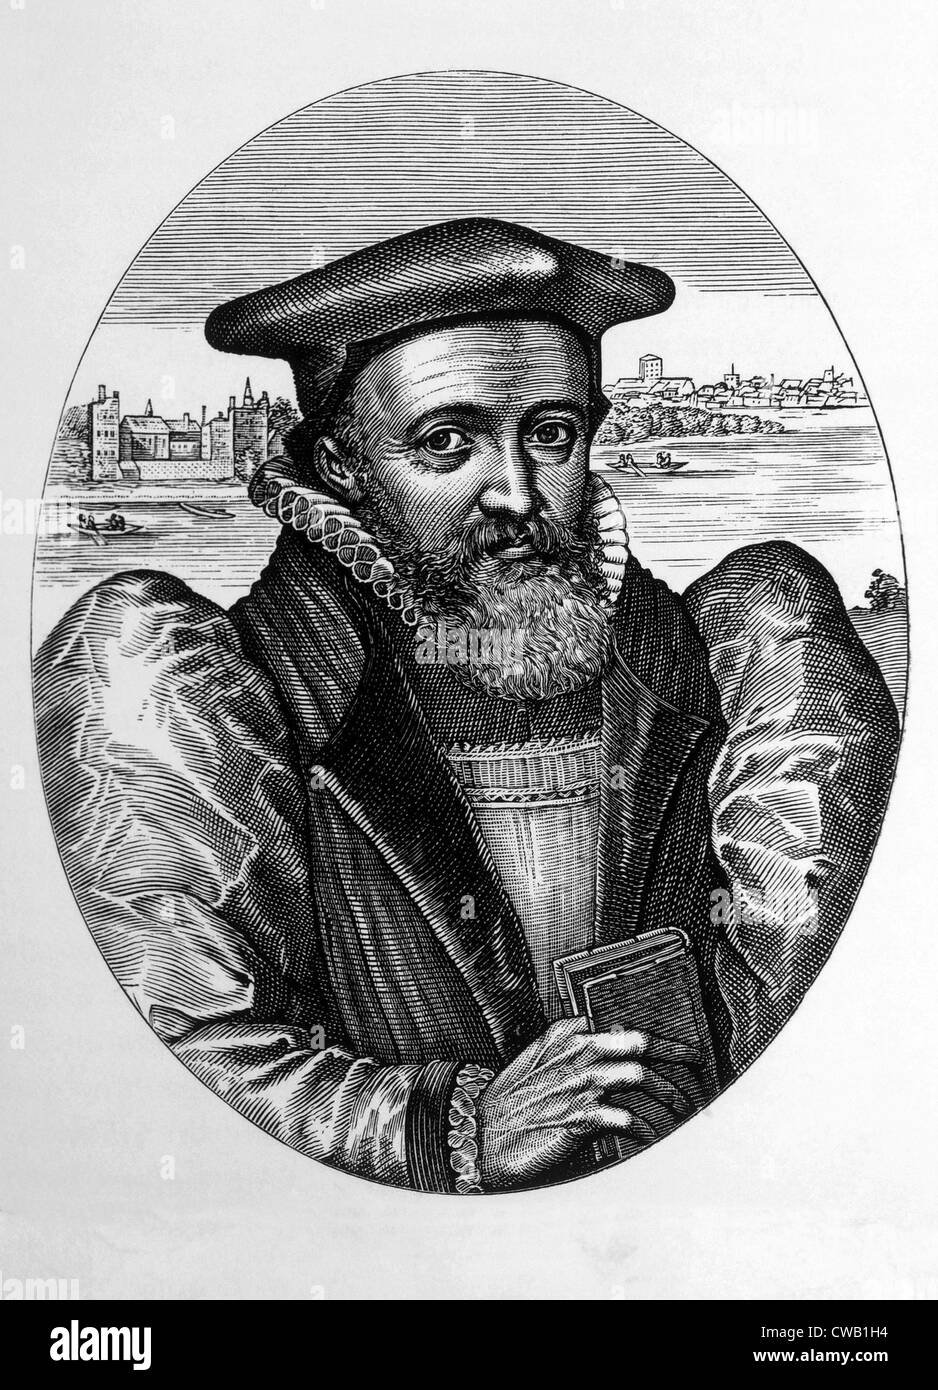 George Abbot (1562-1633), Archbishop of Canterbury from 1611-1633 - Stock Image